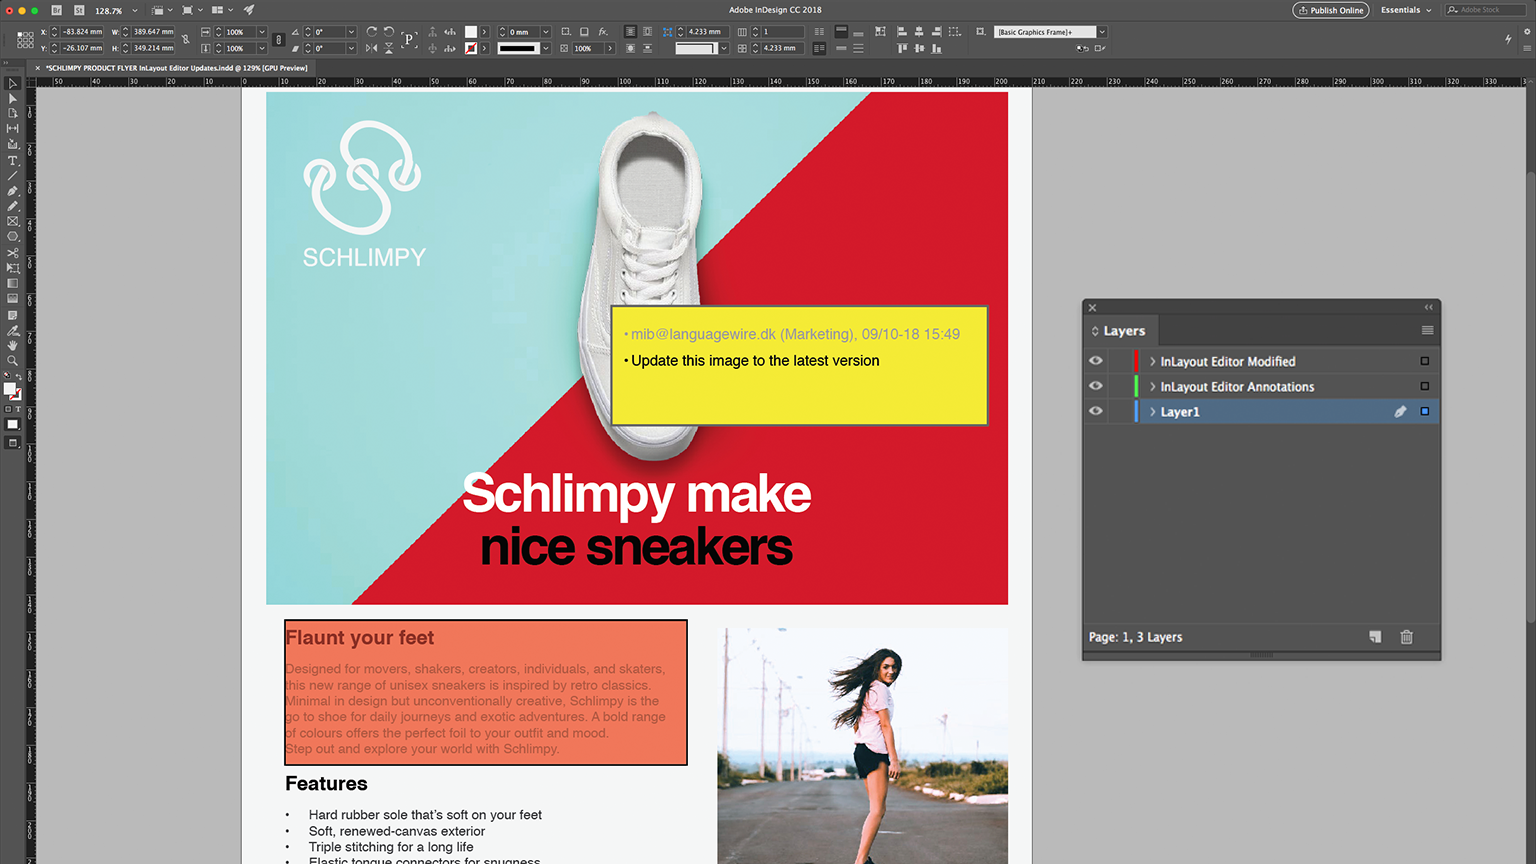 InDesign View InLayout Editor